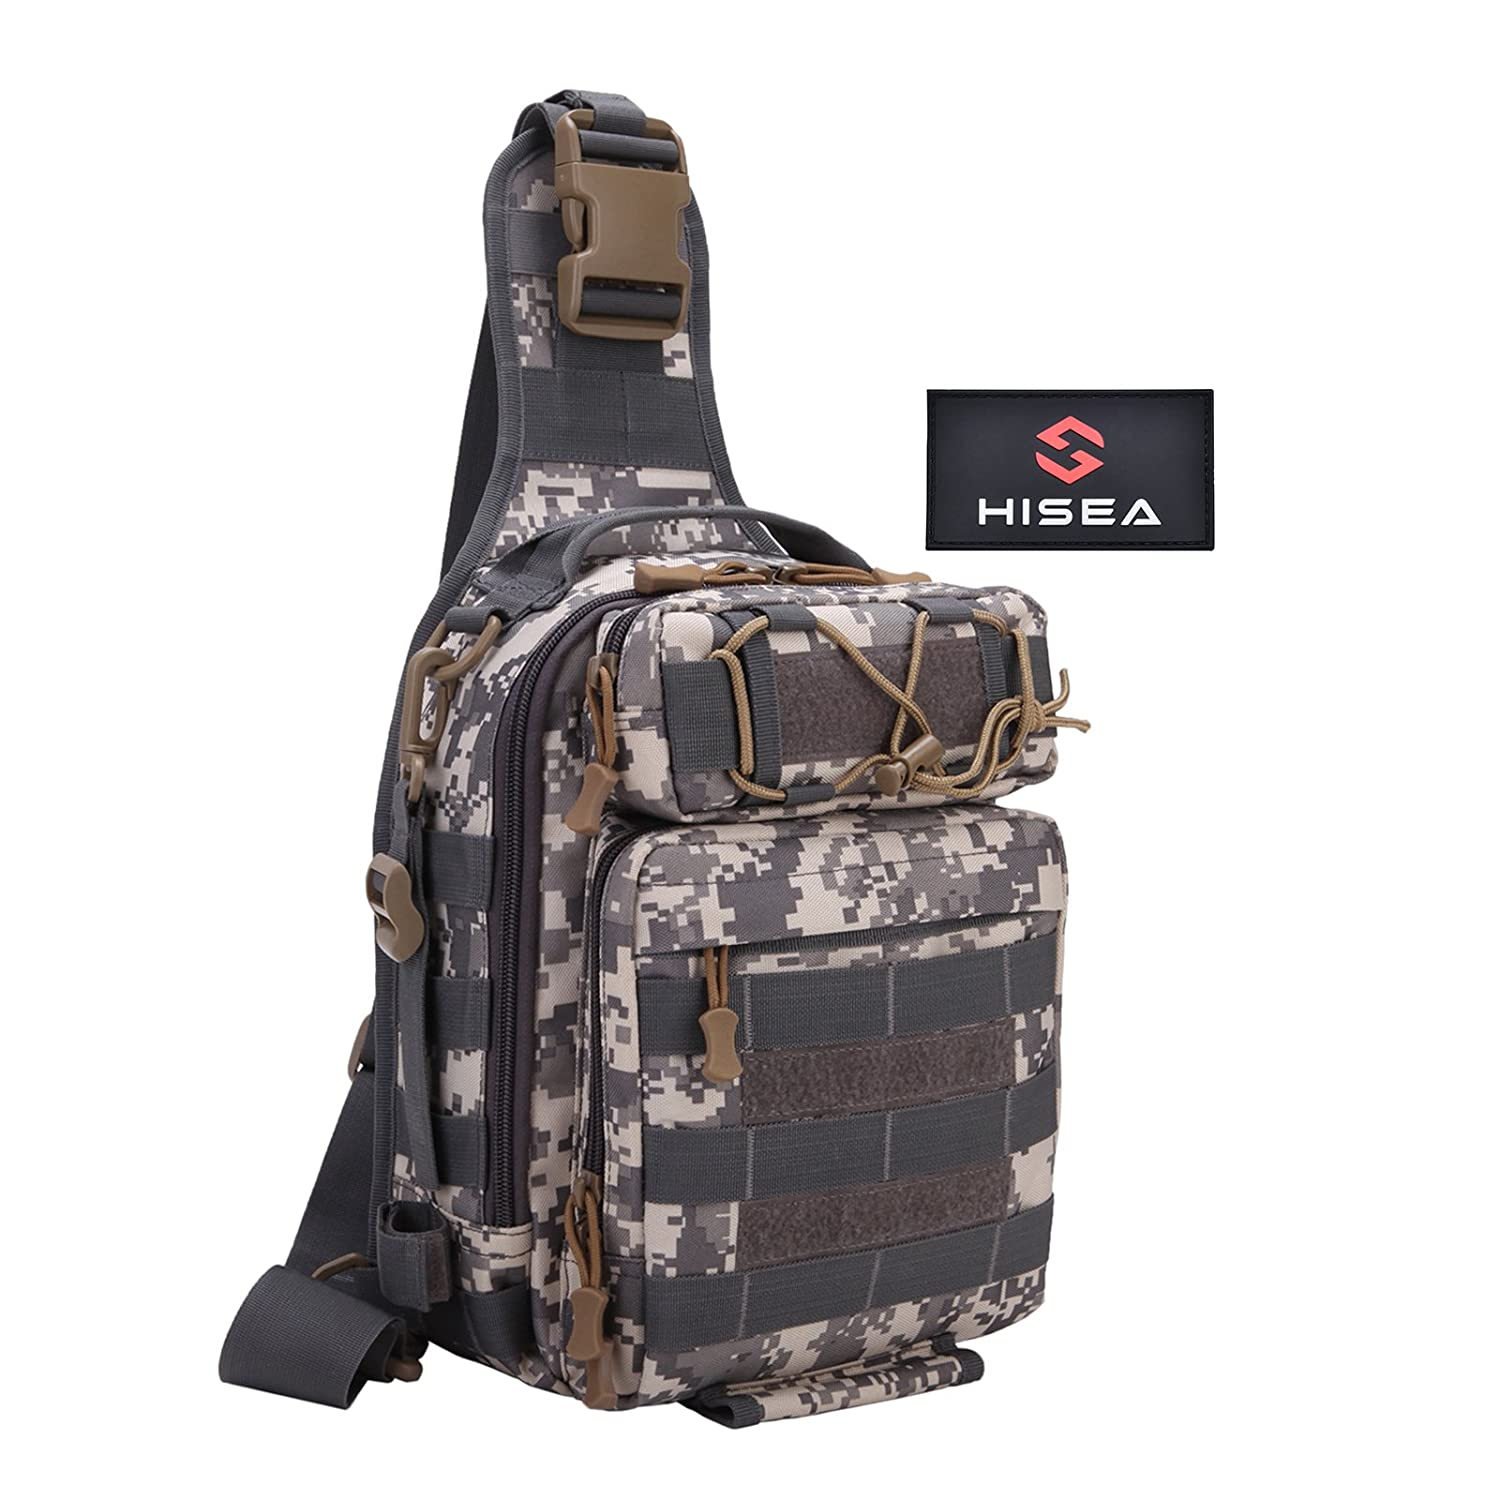 hisea military tactical sling bag assault pack army molleバグアウト